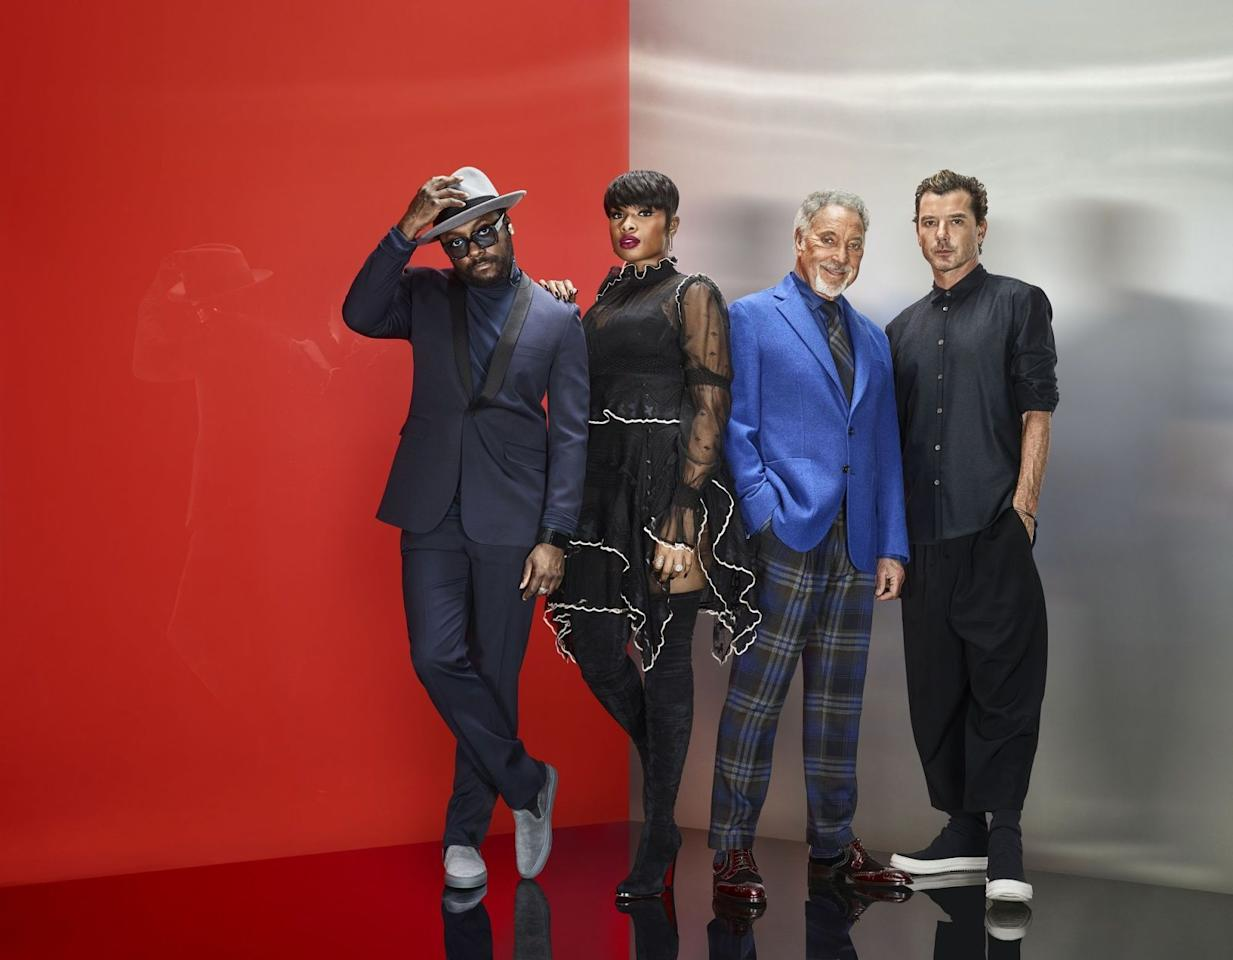 <p>Tom, Will, J-Hud and Gavin's teams are ready to go head-to-head in ITV's first live quarter-final round, airing this Saturday (March 18) at 8.30pm on ITV. Here's what you need to know about the 12 singers vying for a slot in the upcoming grand finale.</p>